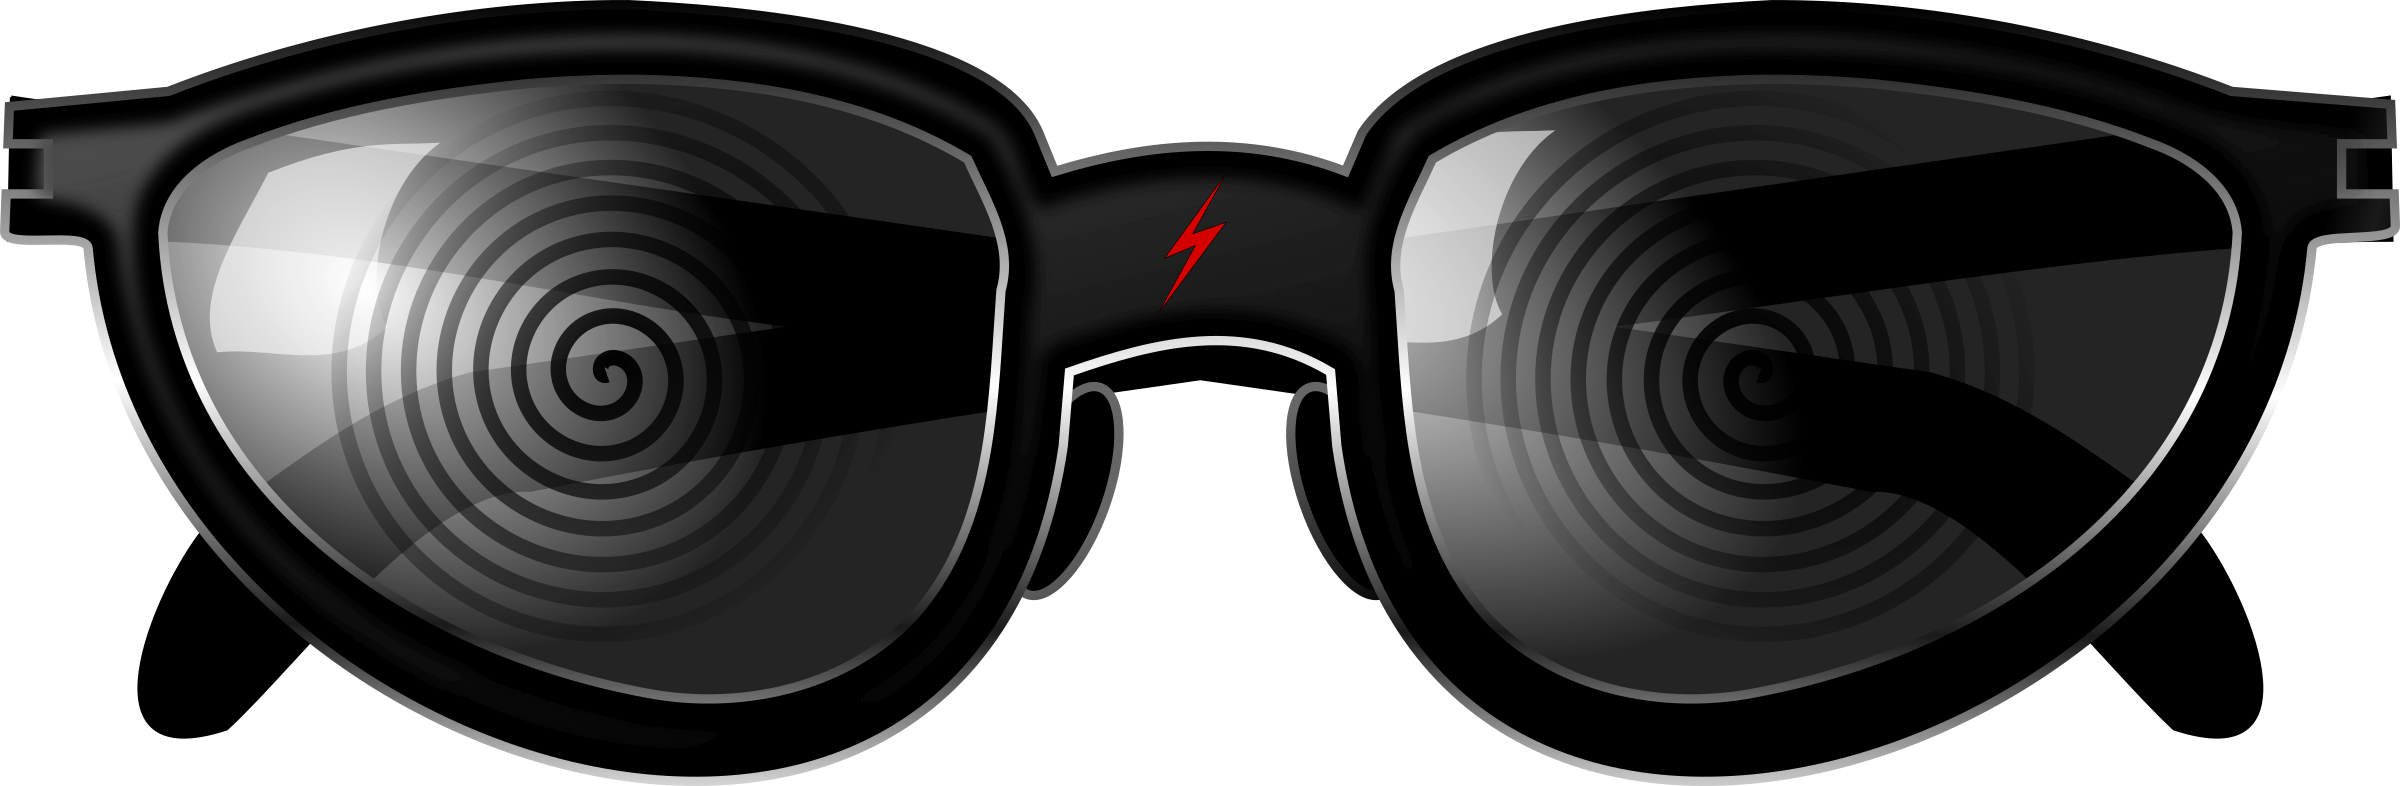 X-Ray Spex Specs Glasses by studio_hades